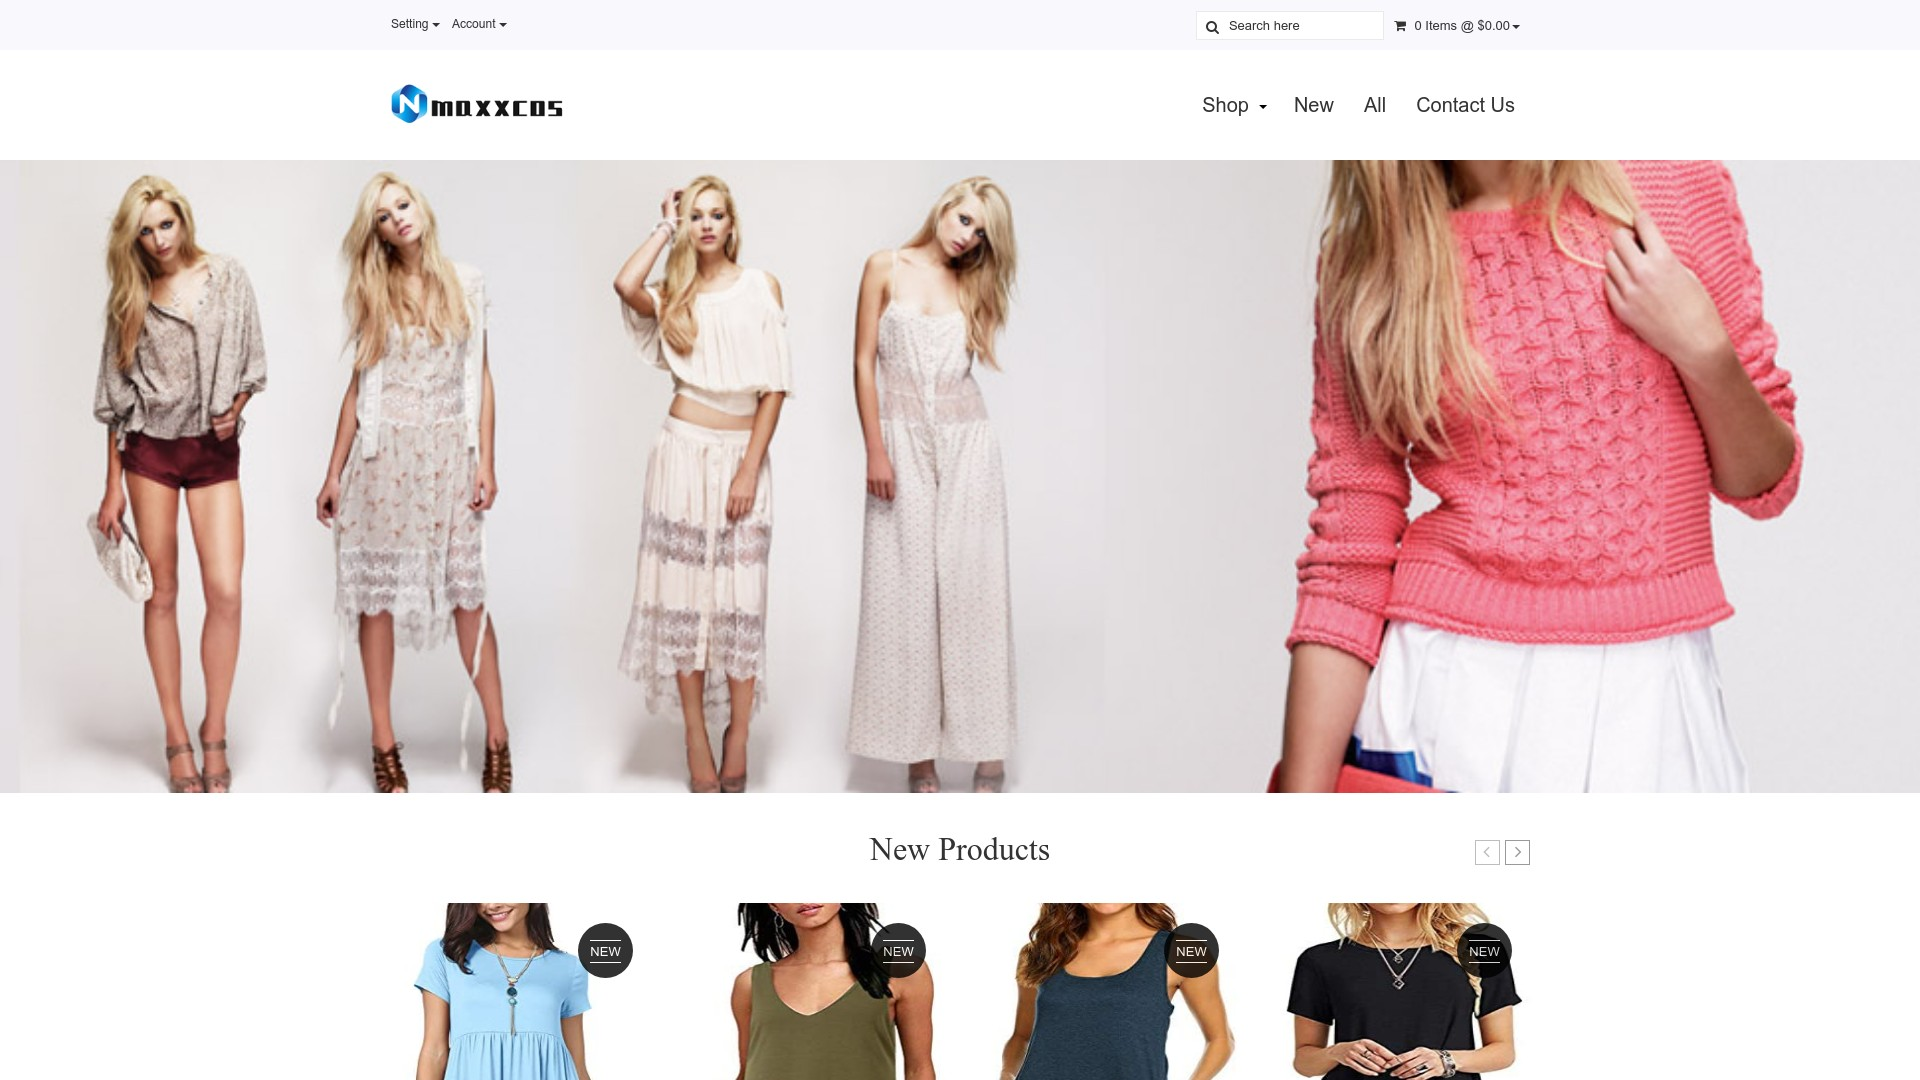 Is Maxxcos a Scam? Review of the Online Apparel Store